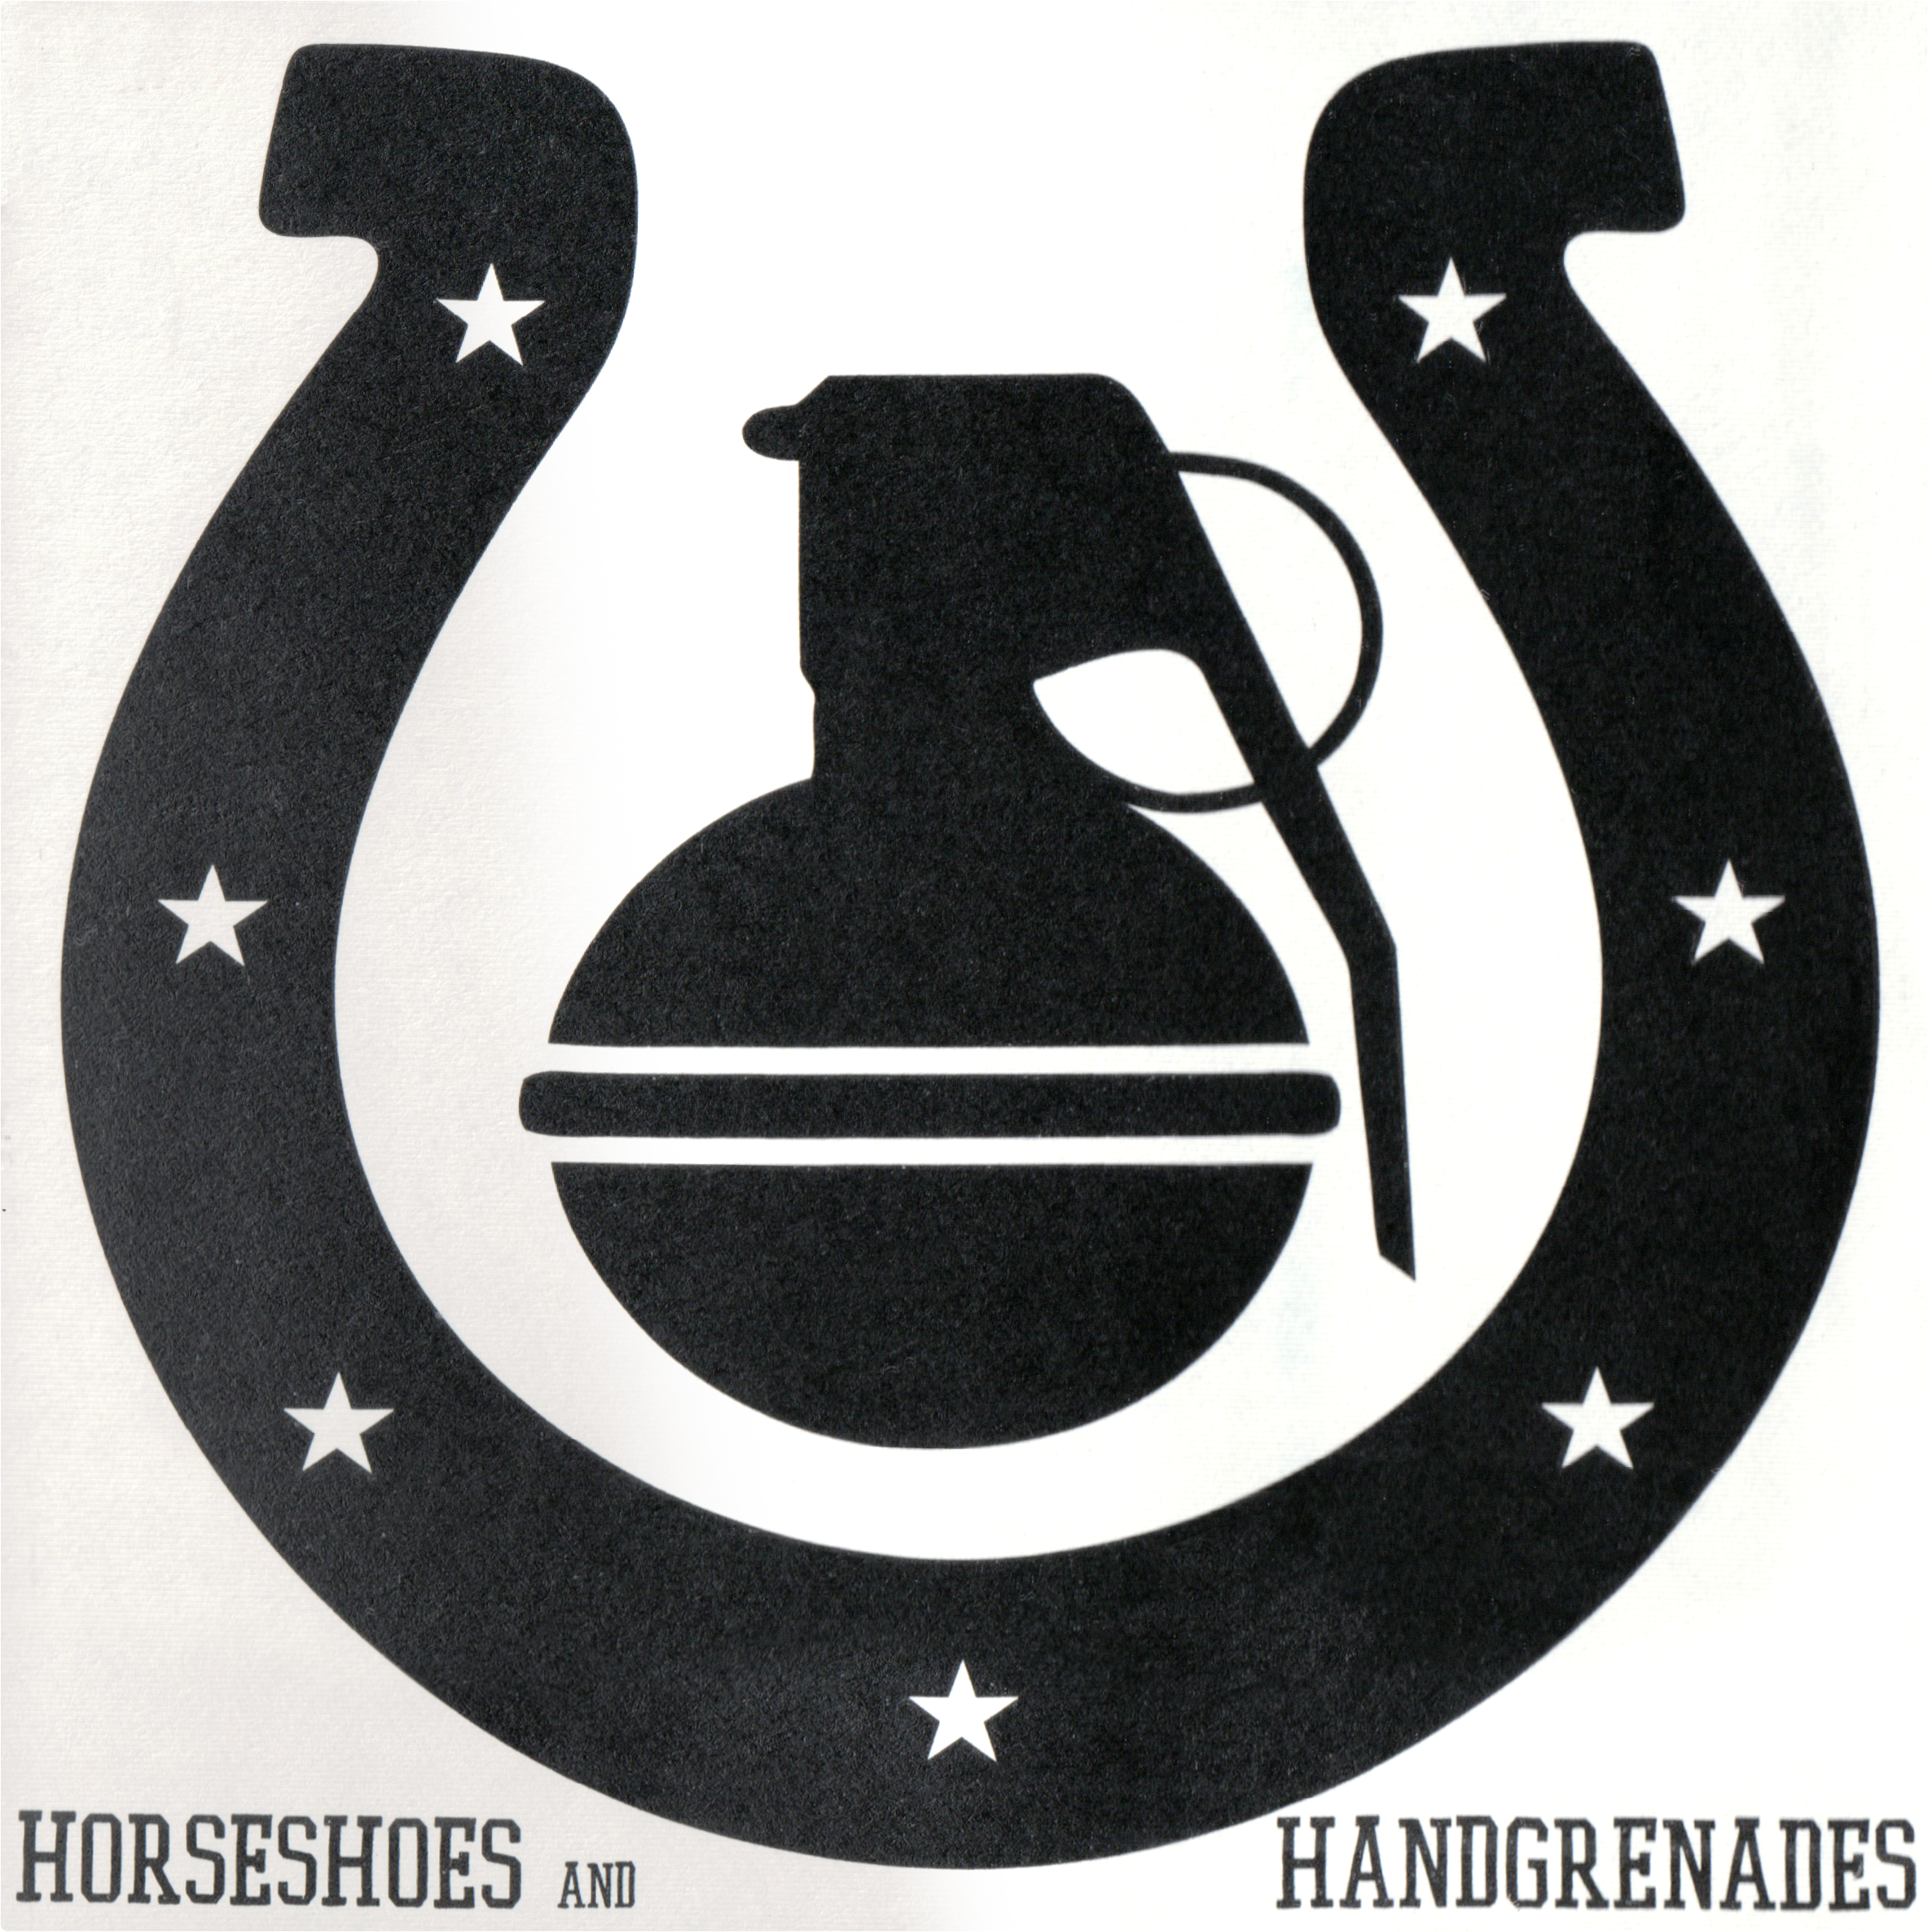 Maison Noir Horseshoes And Handgrenades